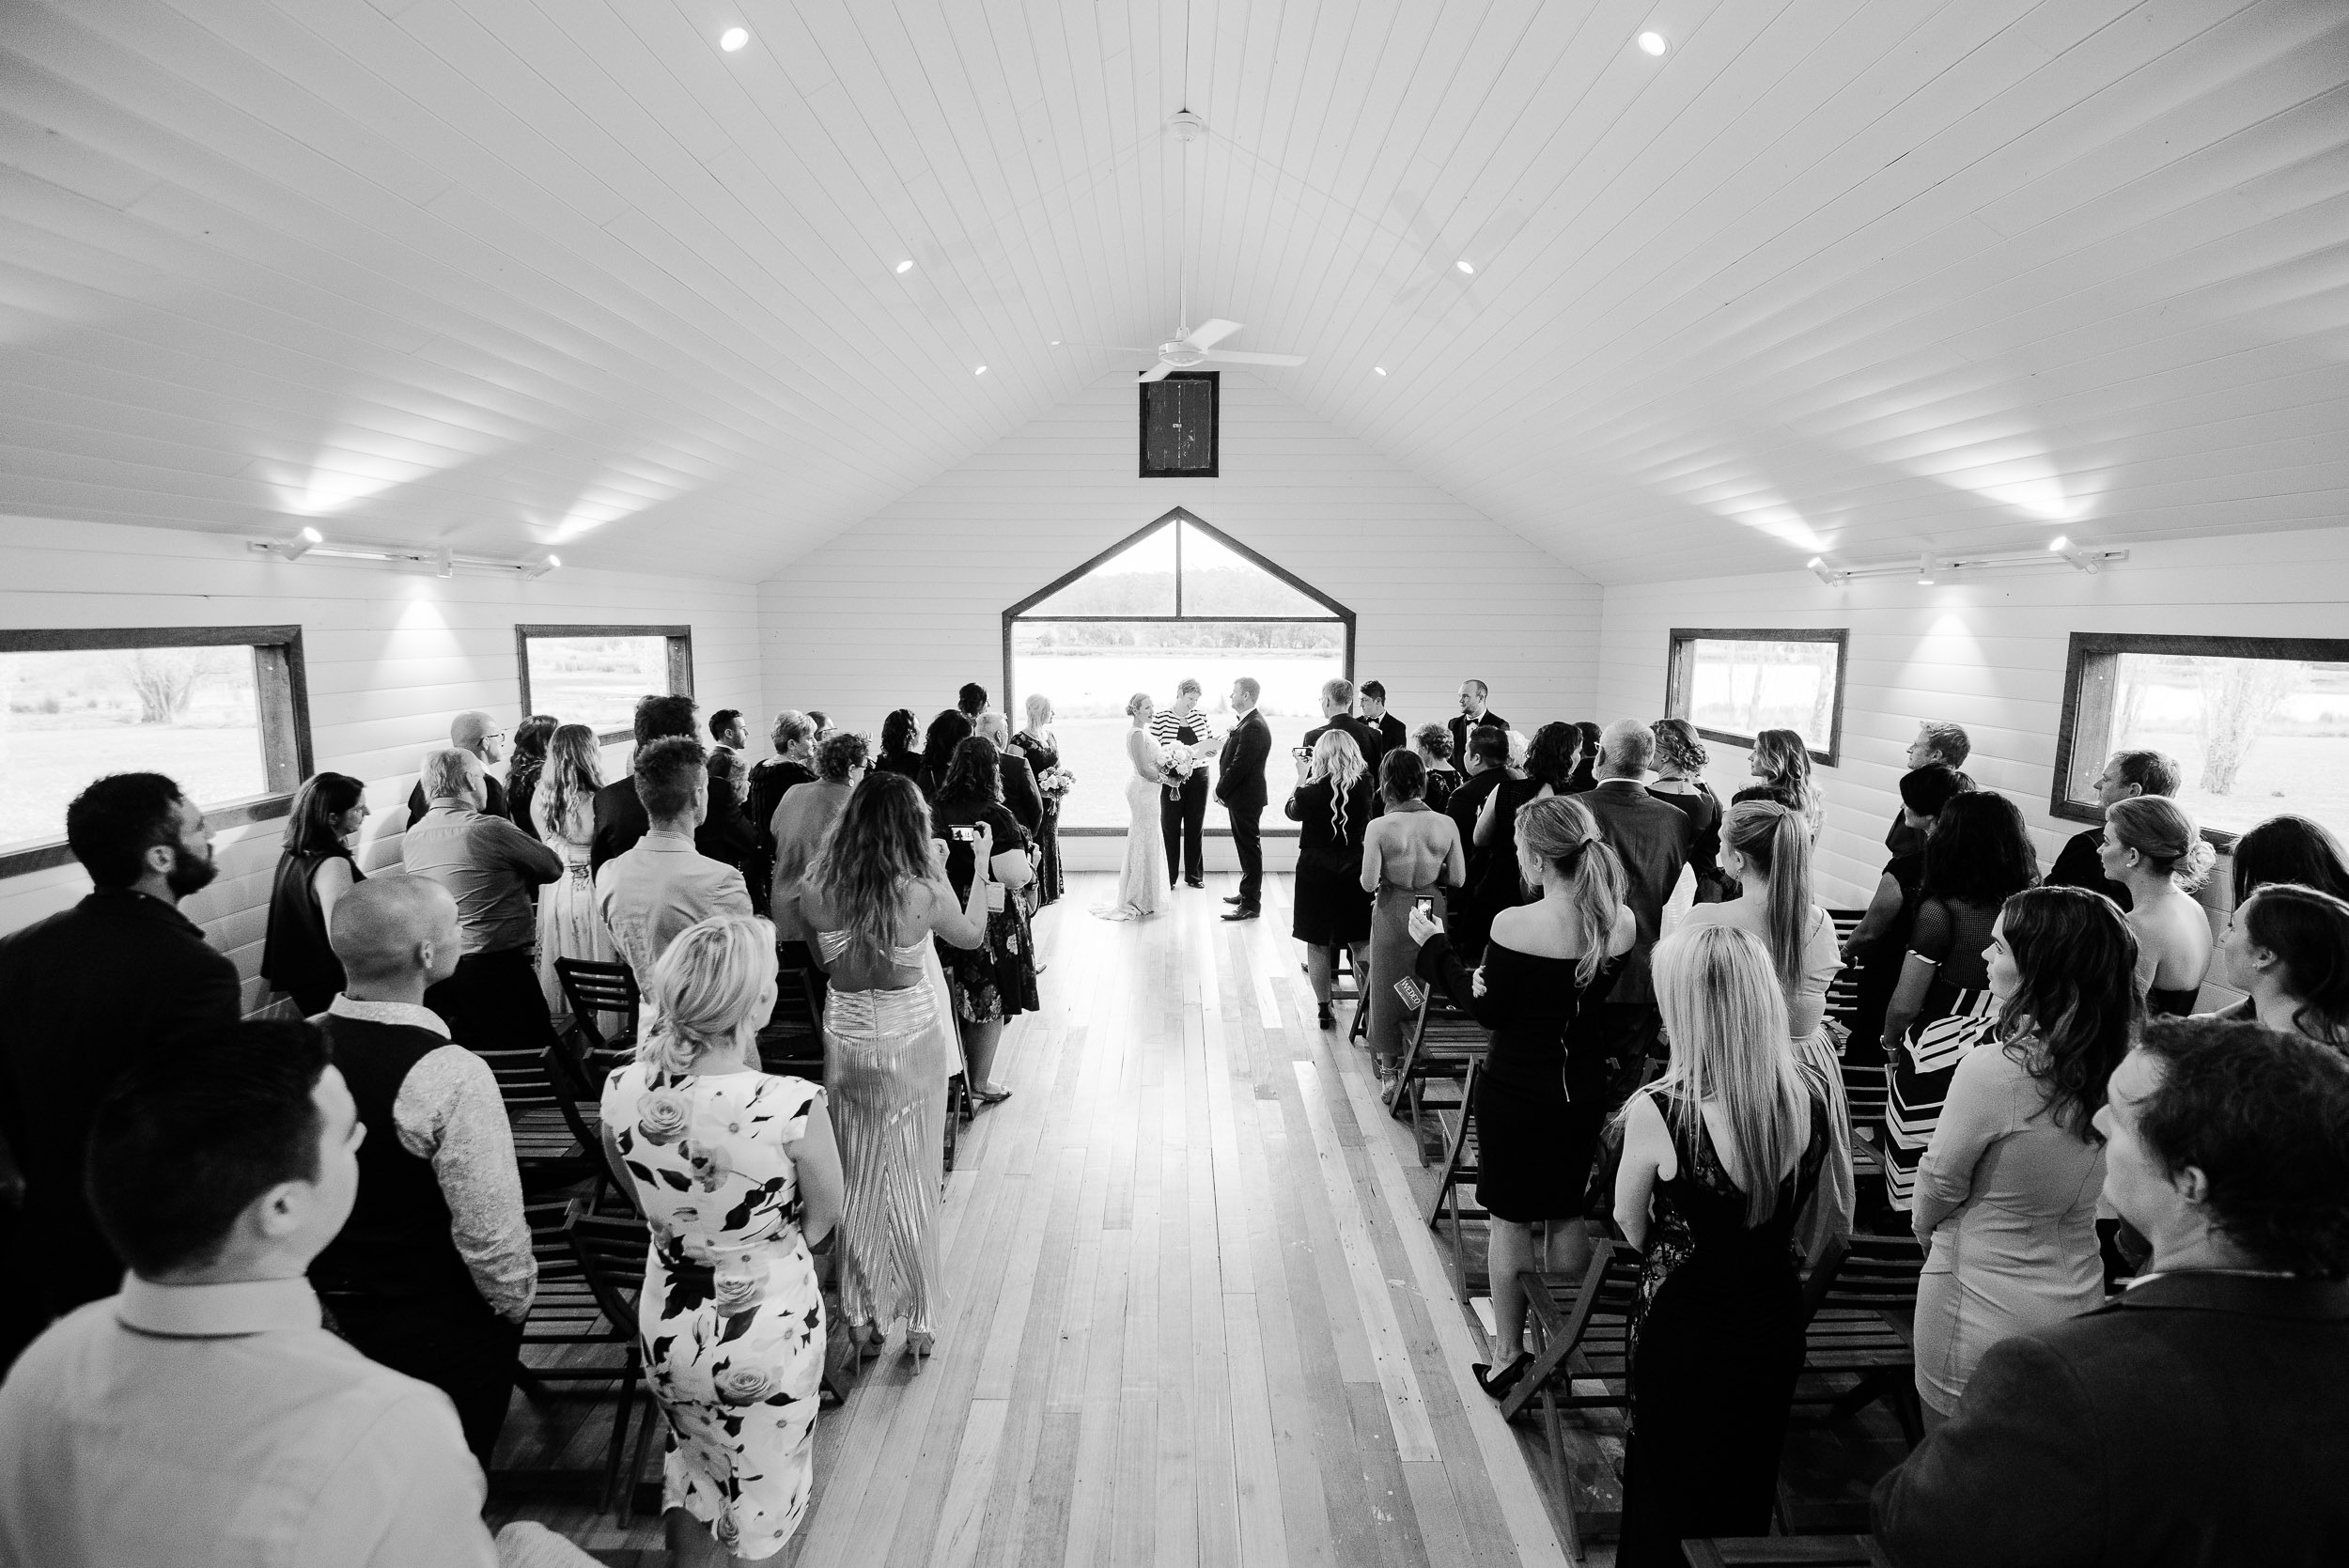 Wedding in the Sault Chapel Daylesford